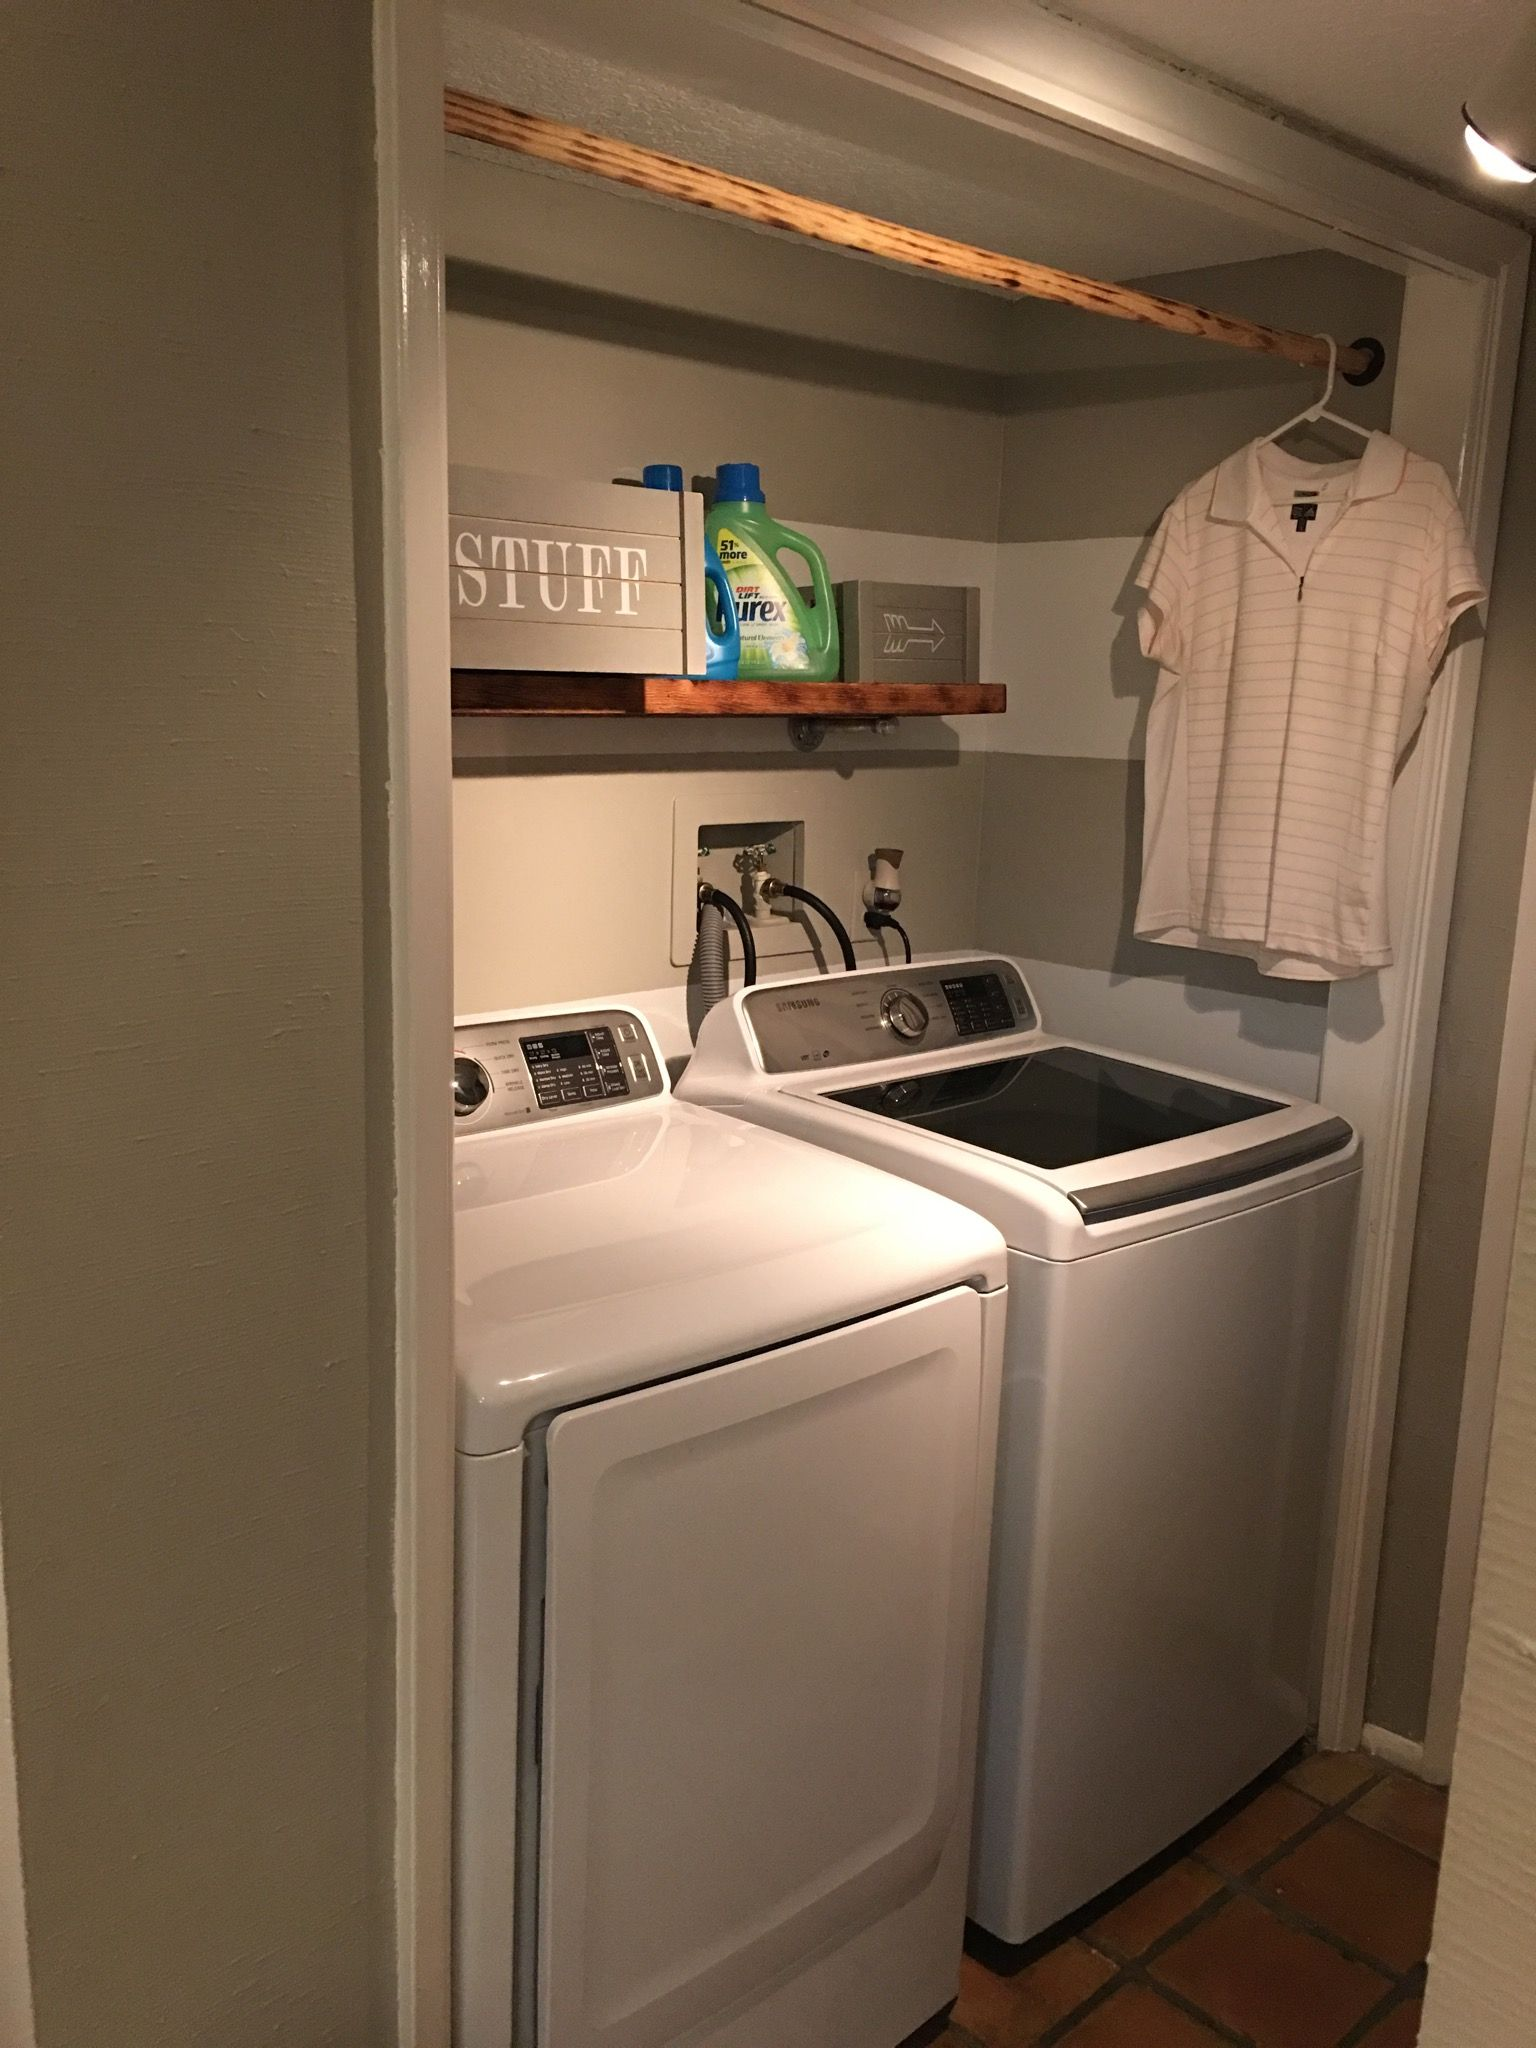 12 Brilliant Ways to Organize a Small Laundry Room a Bud